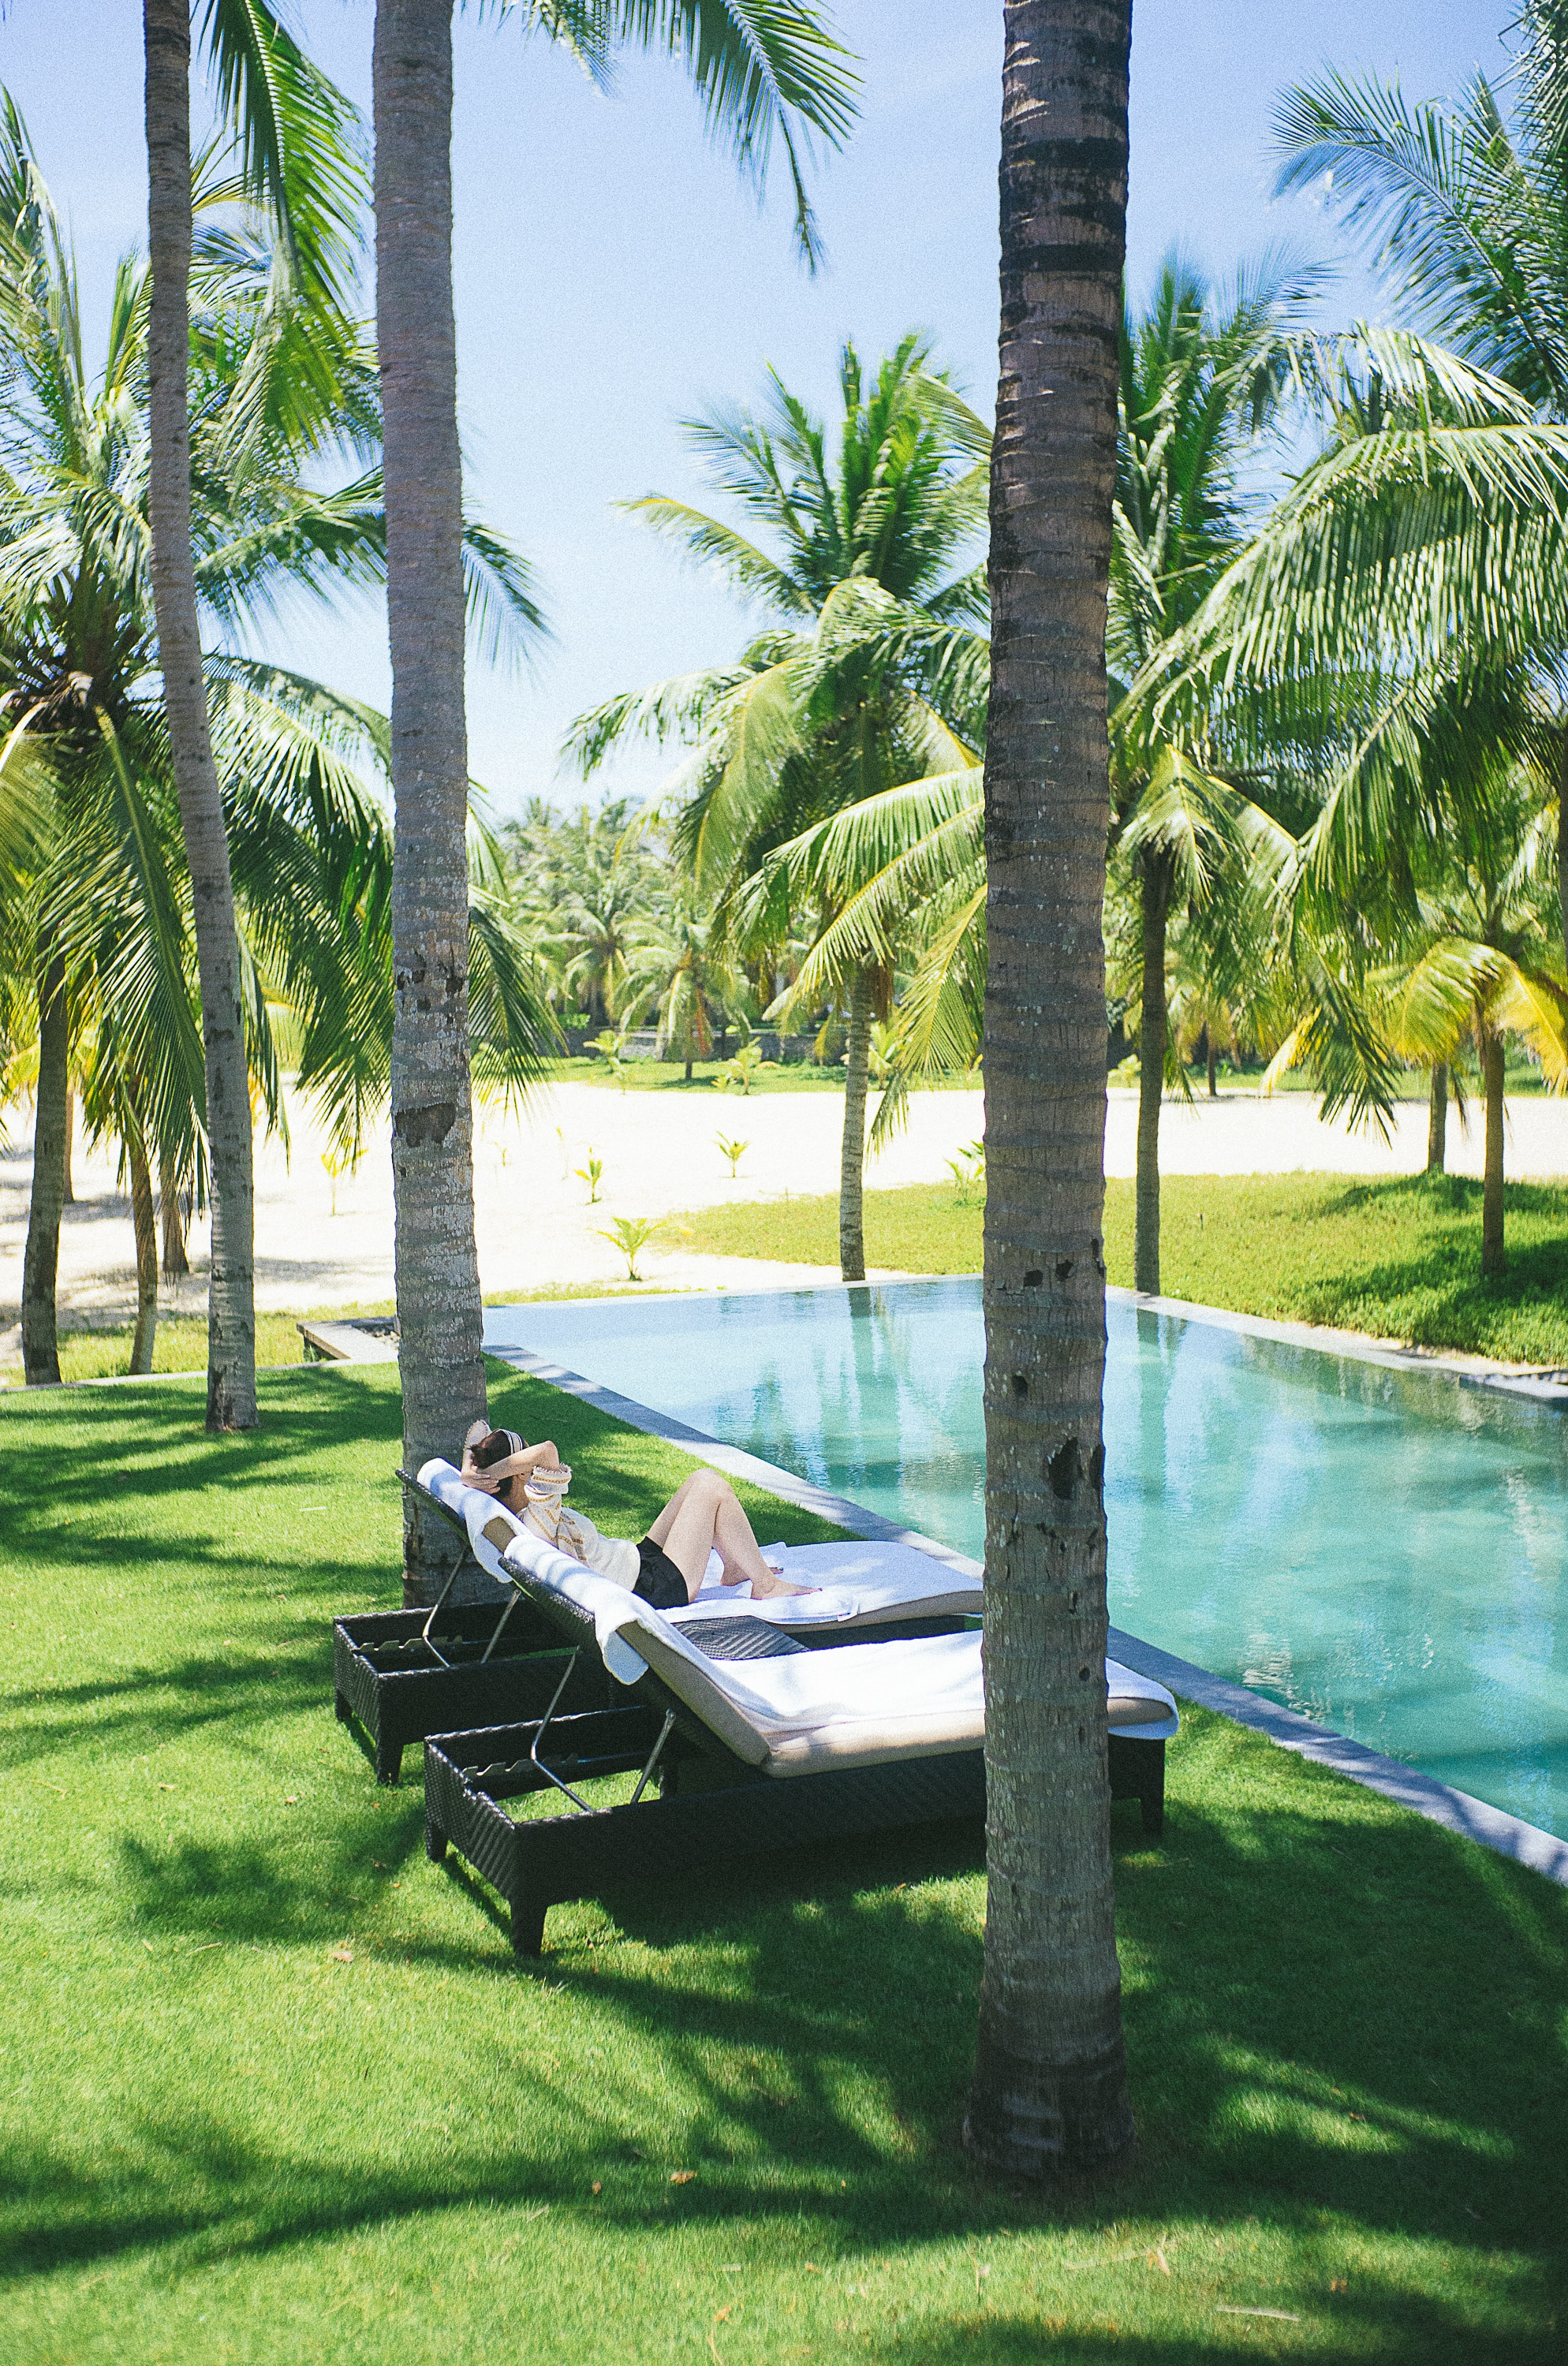 Woman reclining on lounge chair poolside under palm trees